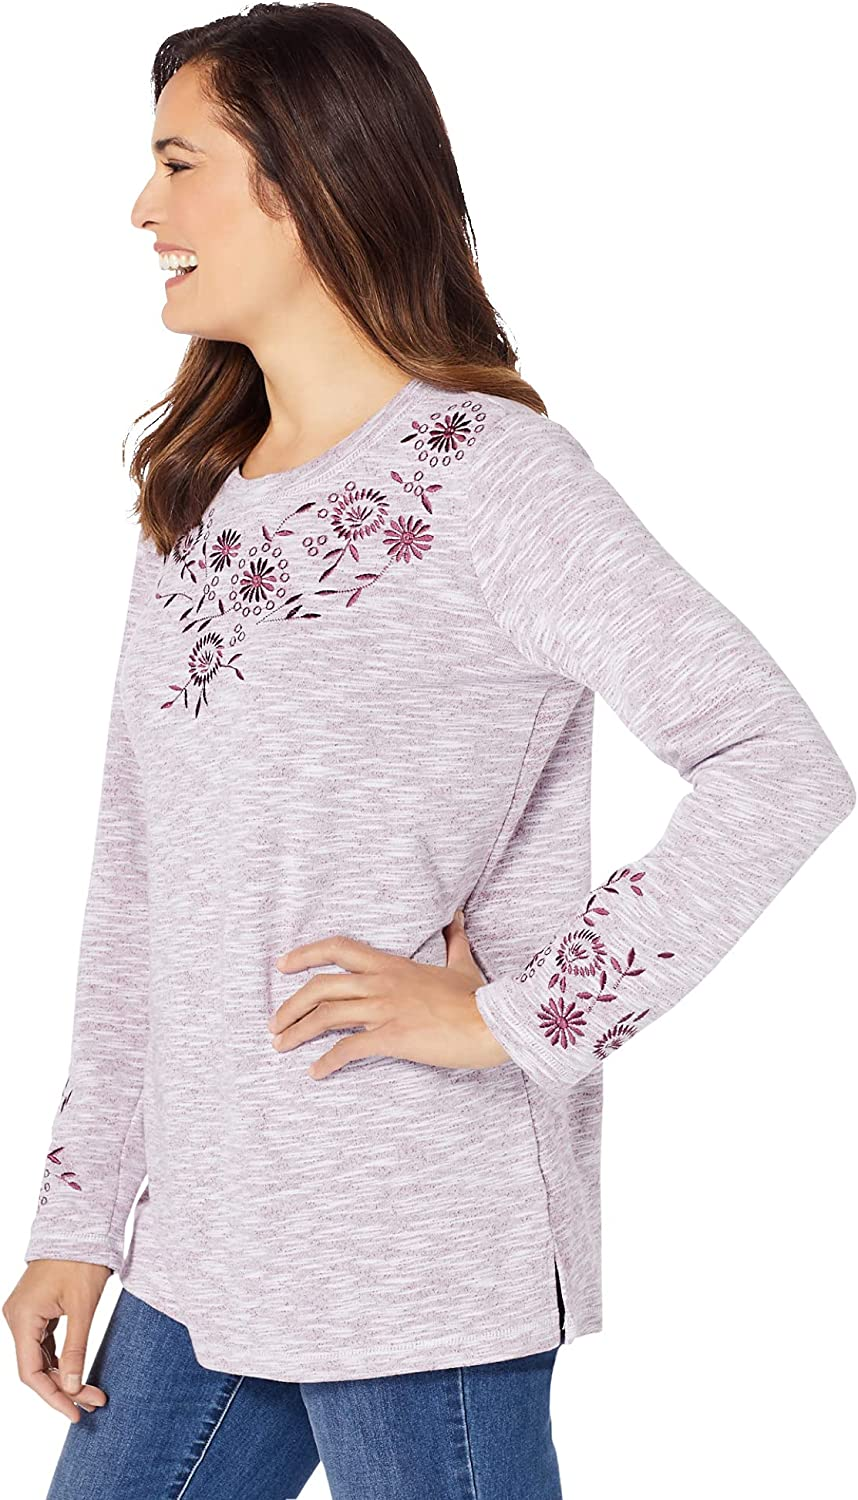 Woman Within Women's Plus Size Floral Embroidered Sweatshirt Tee